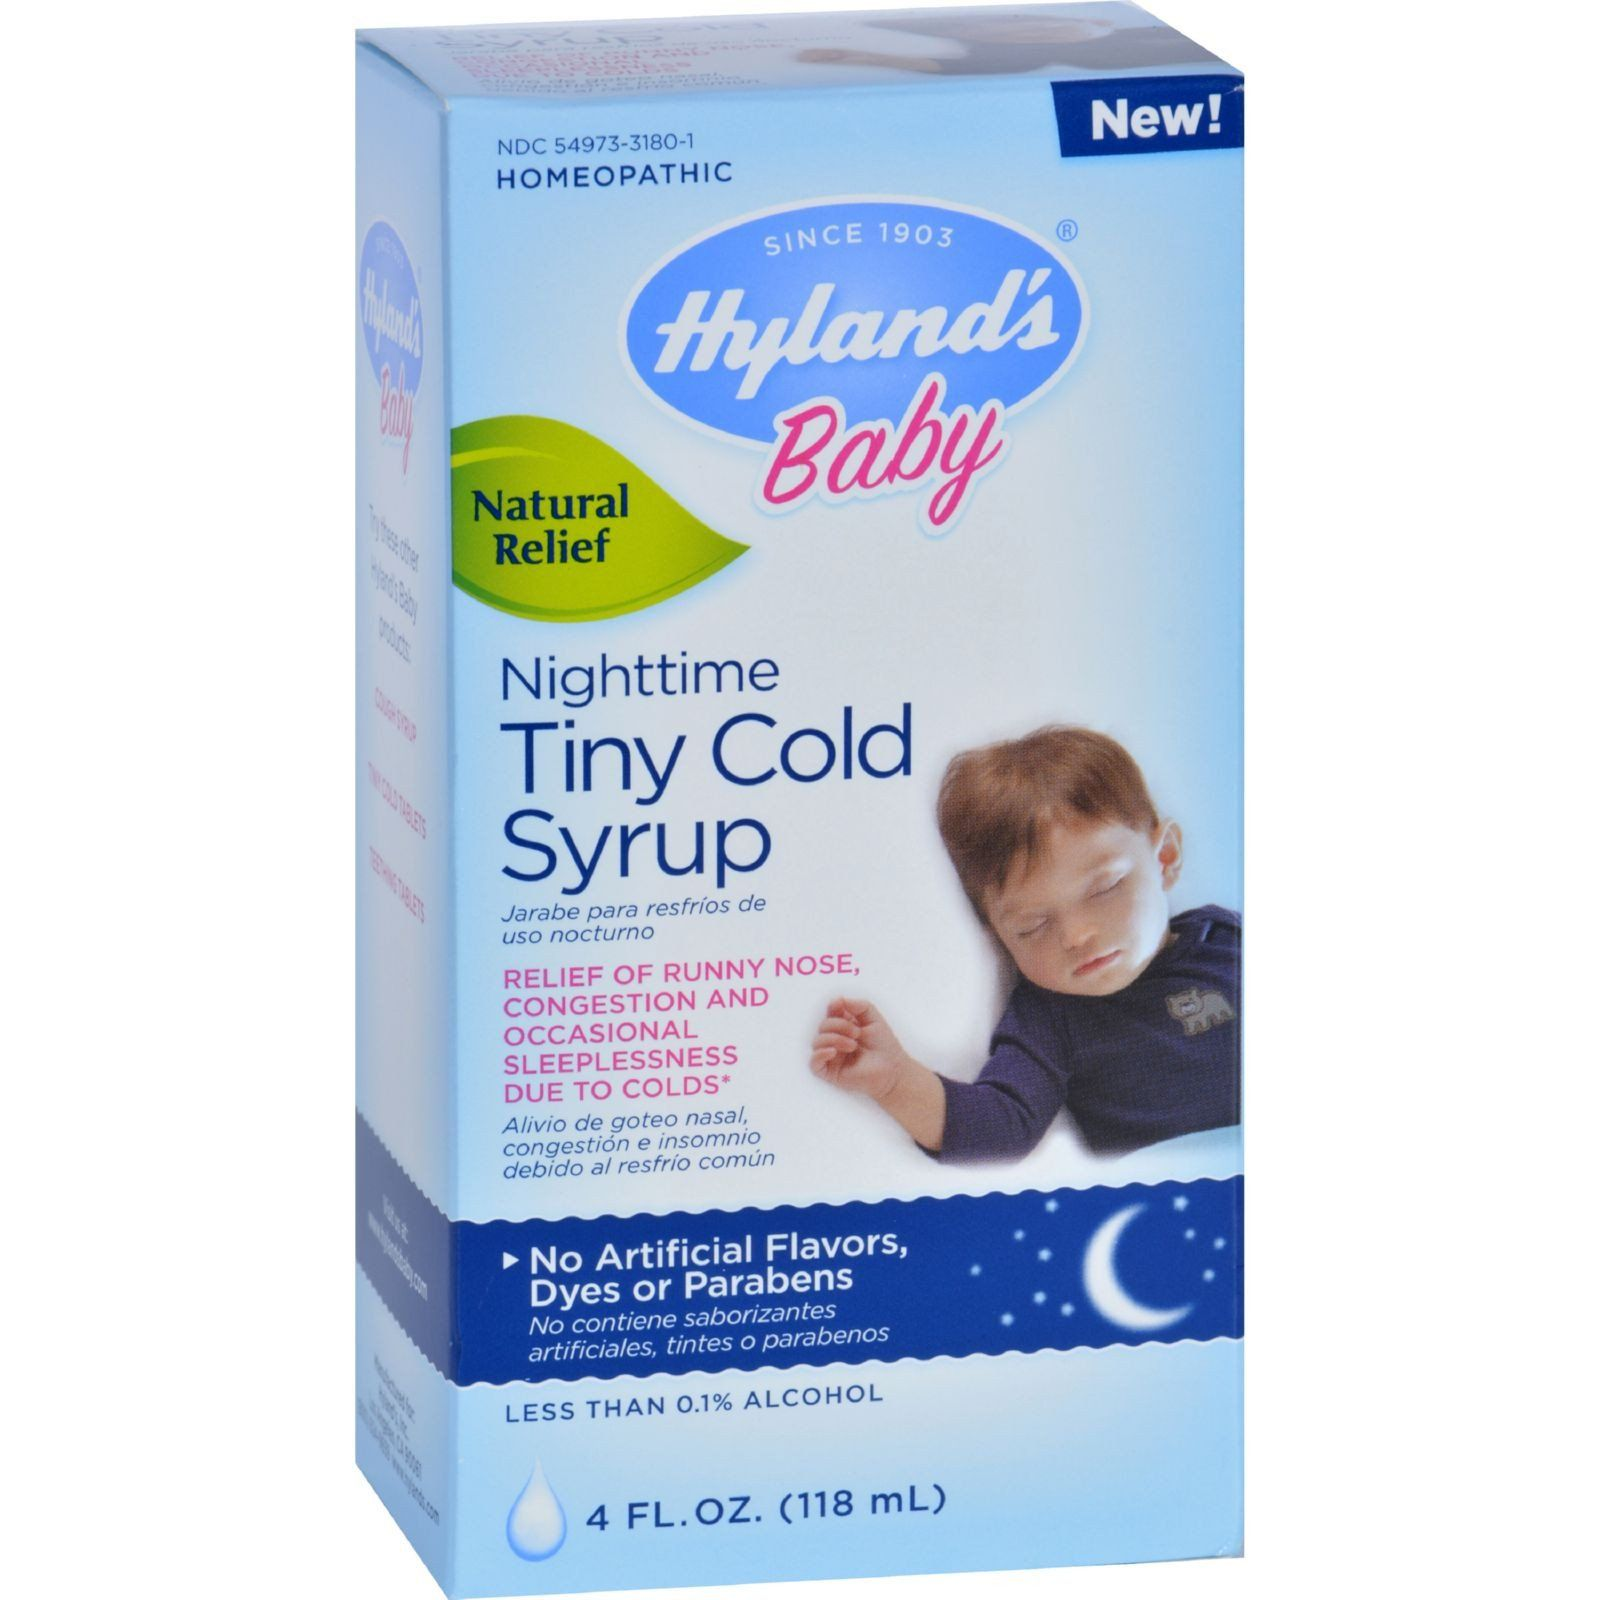 Hylands Homepathic Cold Syrup Nighttime Tiny Baby 4